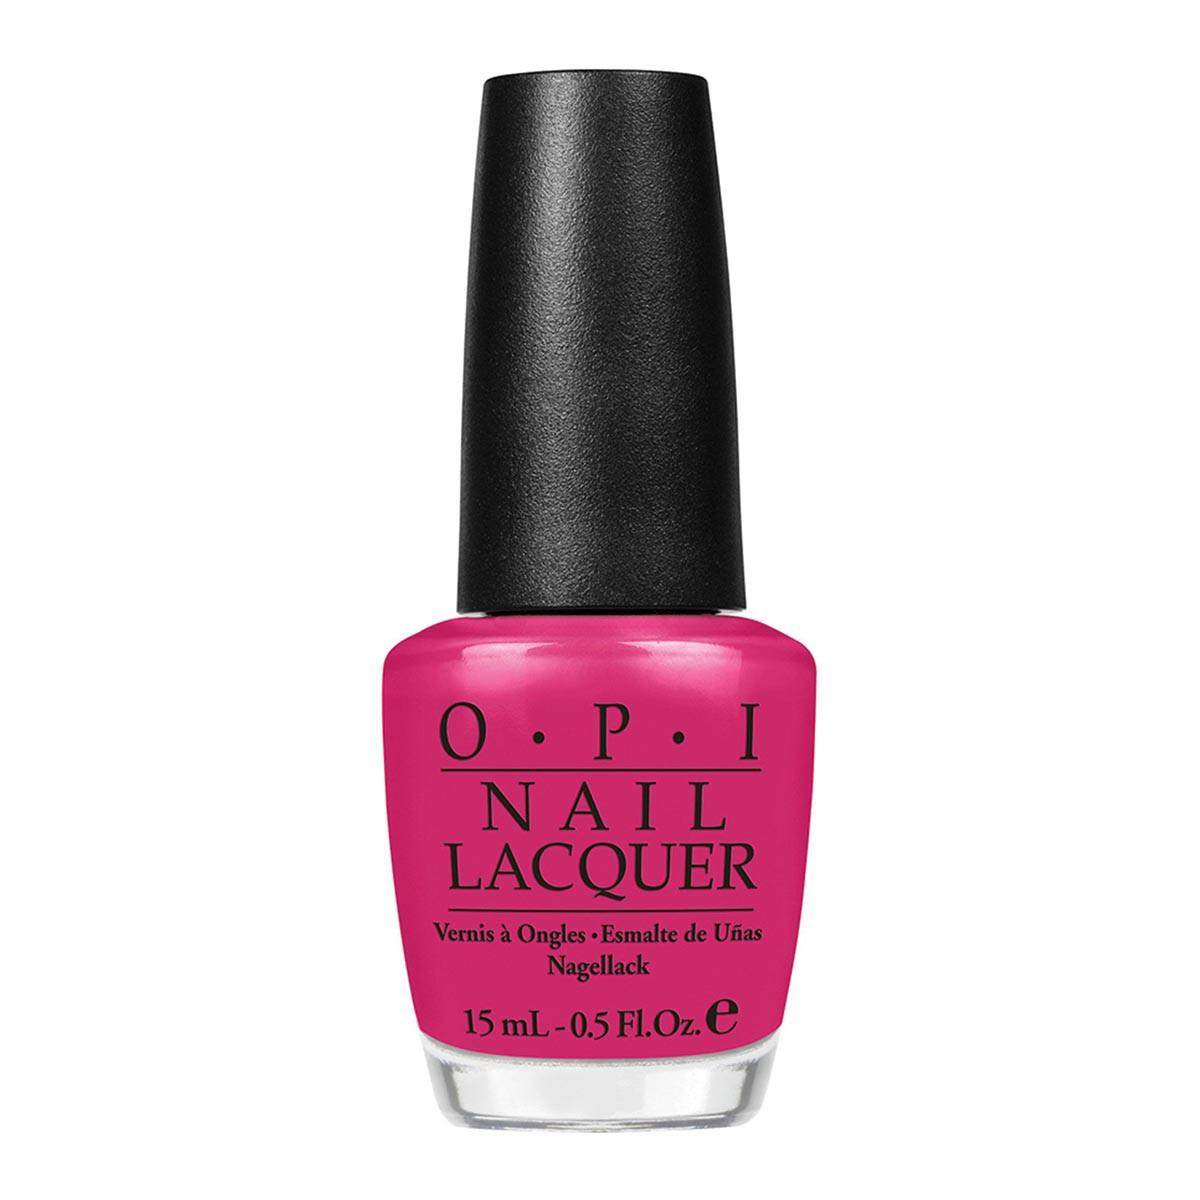 Opi fragrances Nail Lacquer Nlh59 Kiss Me On My Tulips